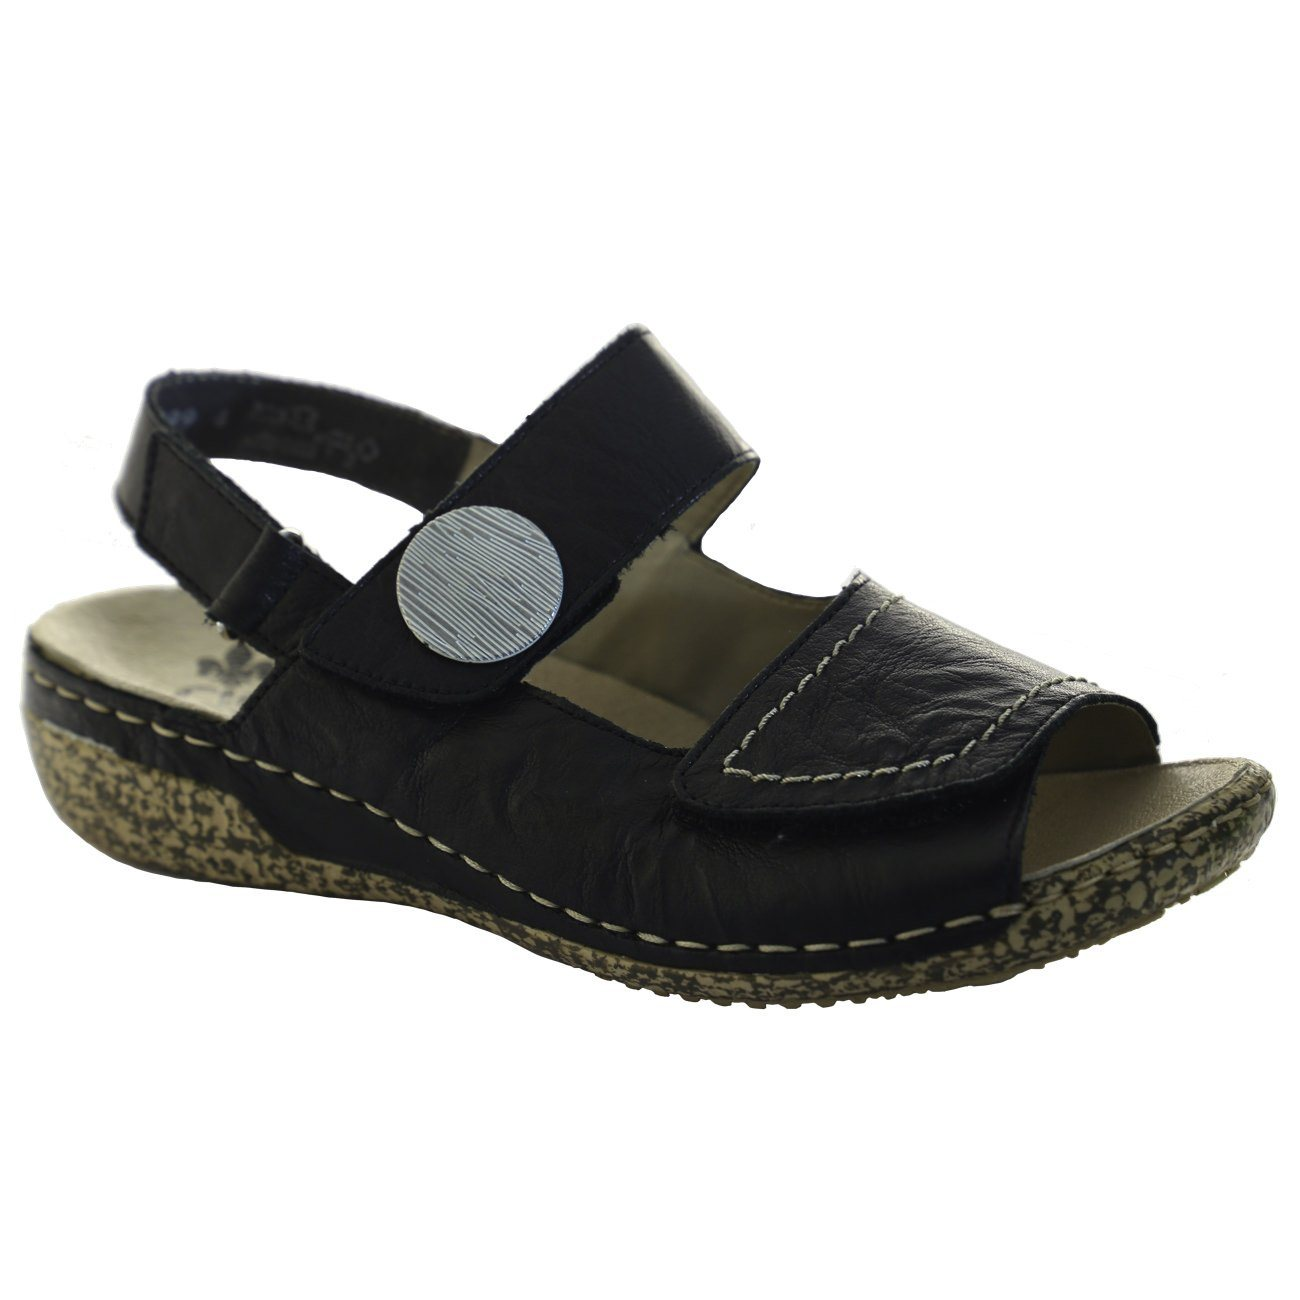 Rieker Antistress, V7272_00, Sandal, Women, Leather Sandals Rieker Antistress Black 36